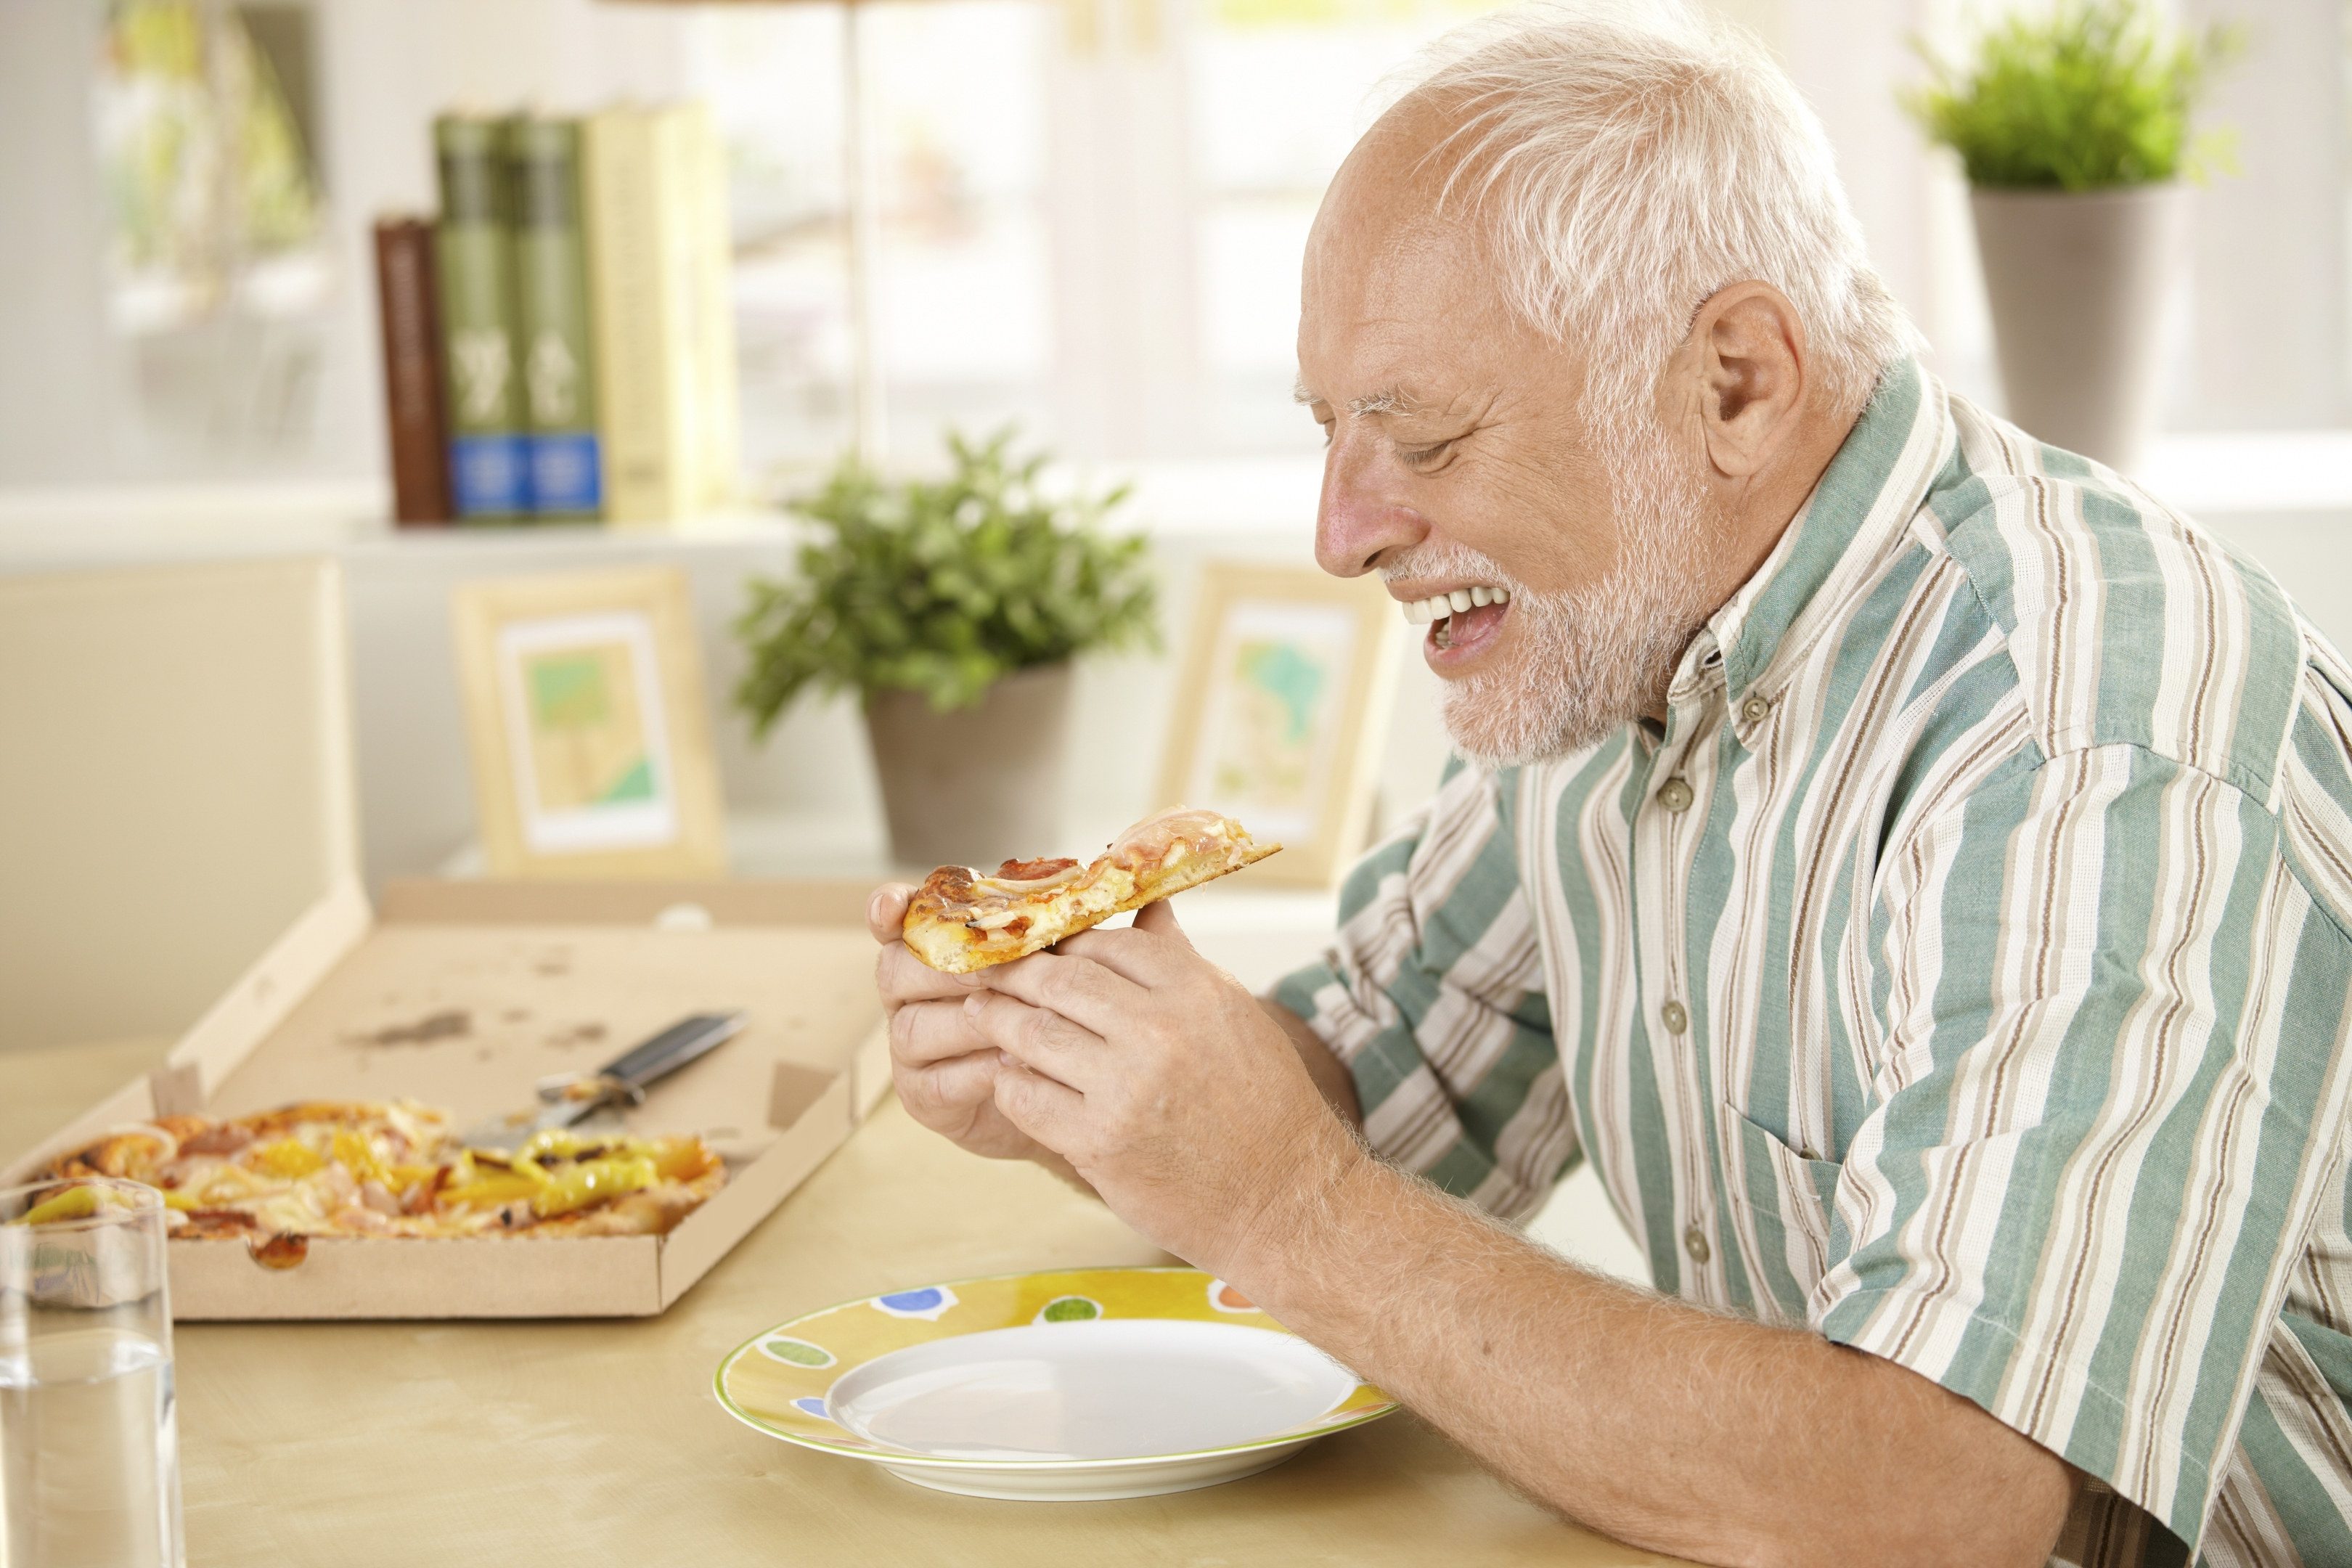 The pizza diet? (Getty Images)